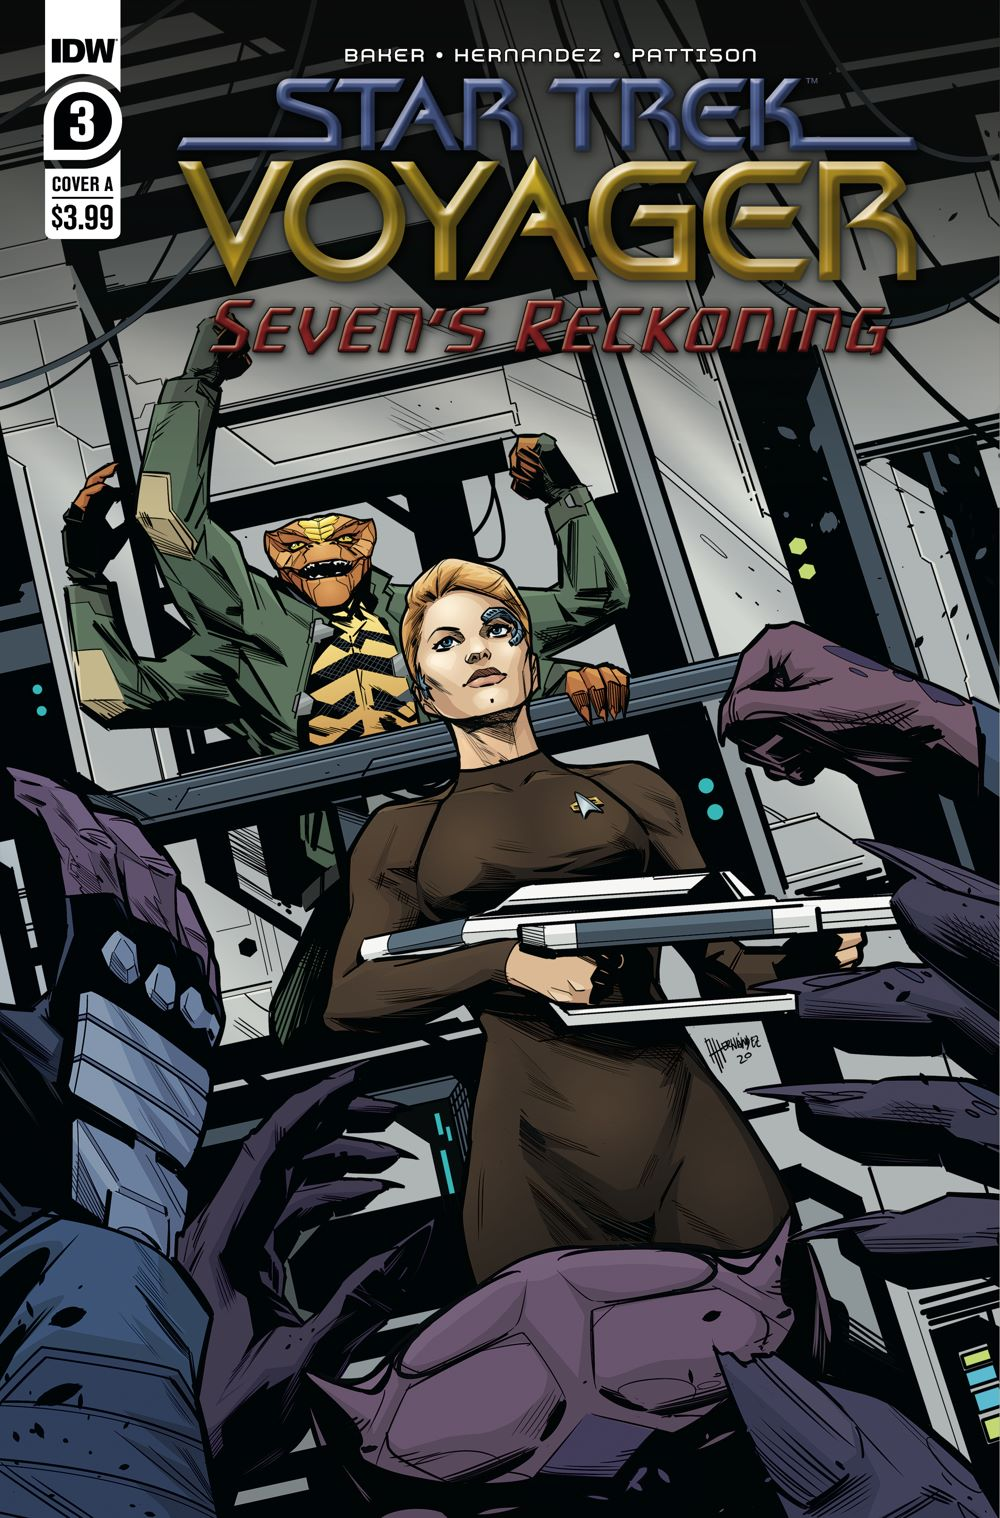 ST_Voyager_SR03-coverA-1 ComicList: IDW Publishing New Releases for 01/20/2021